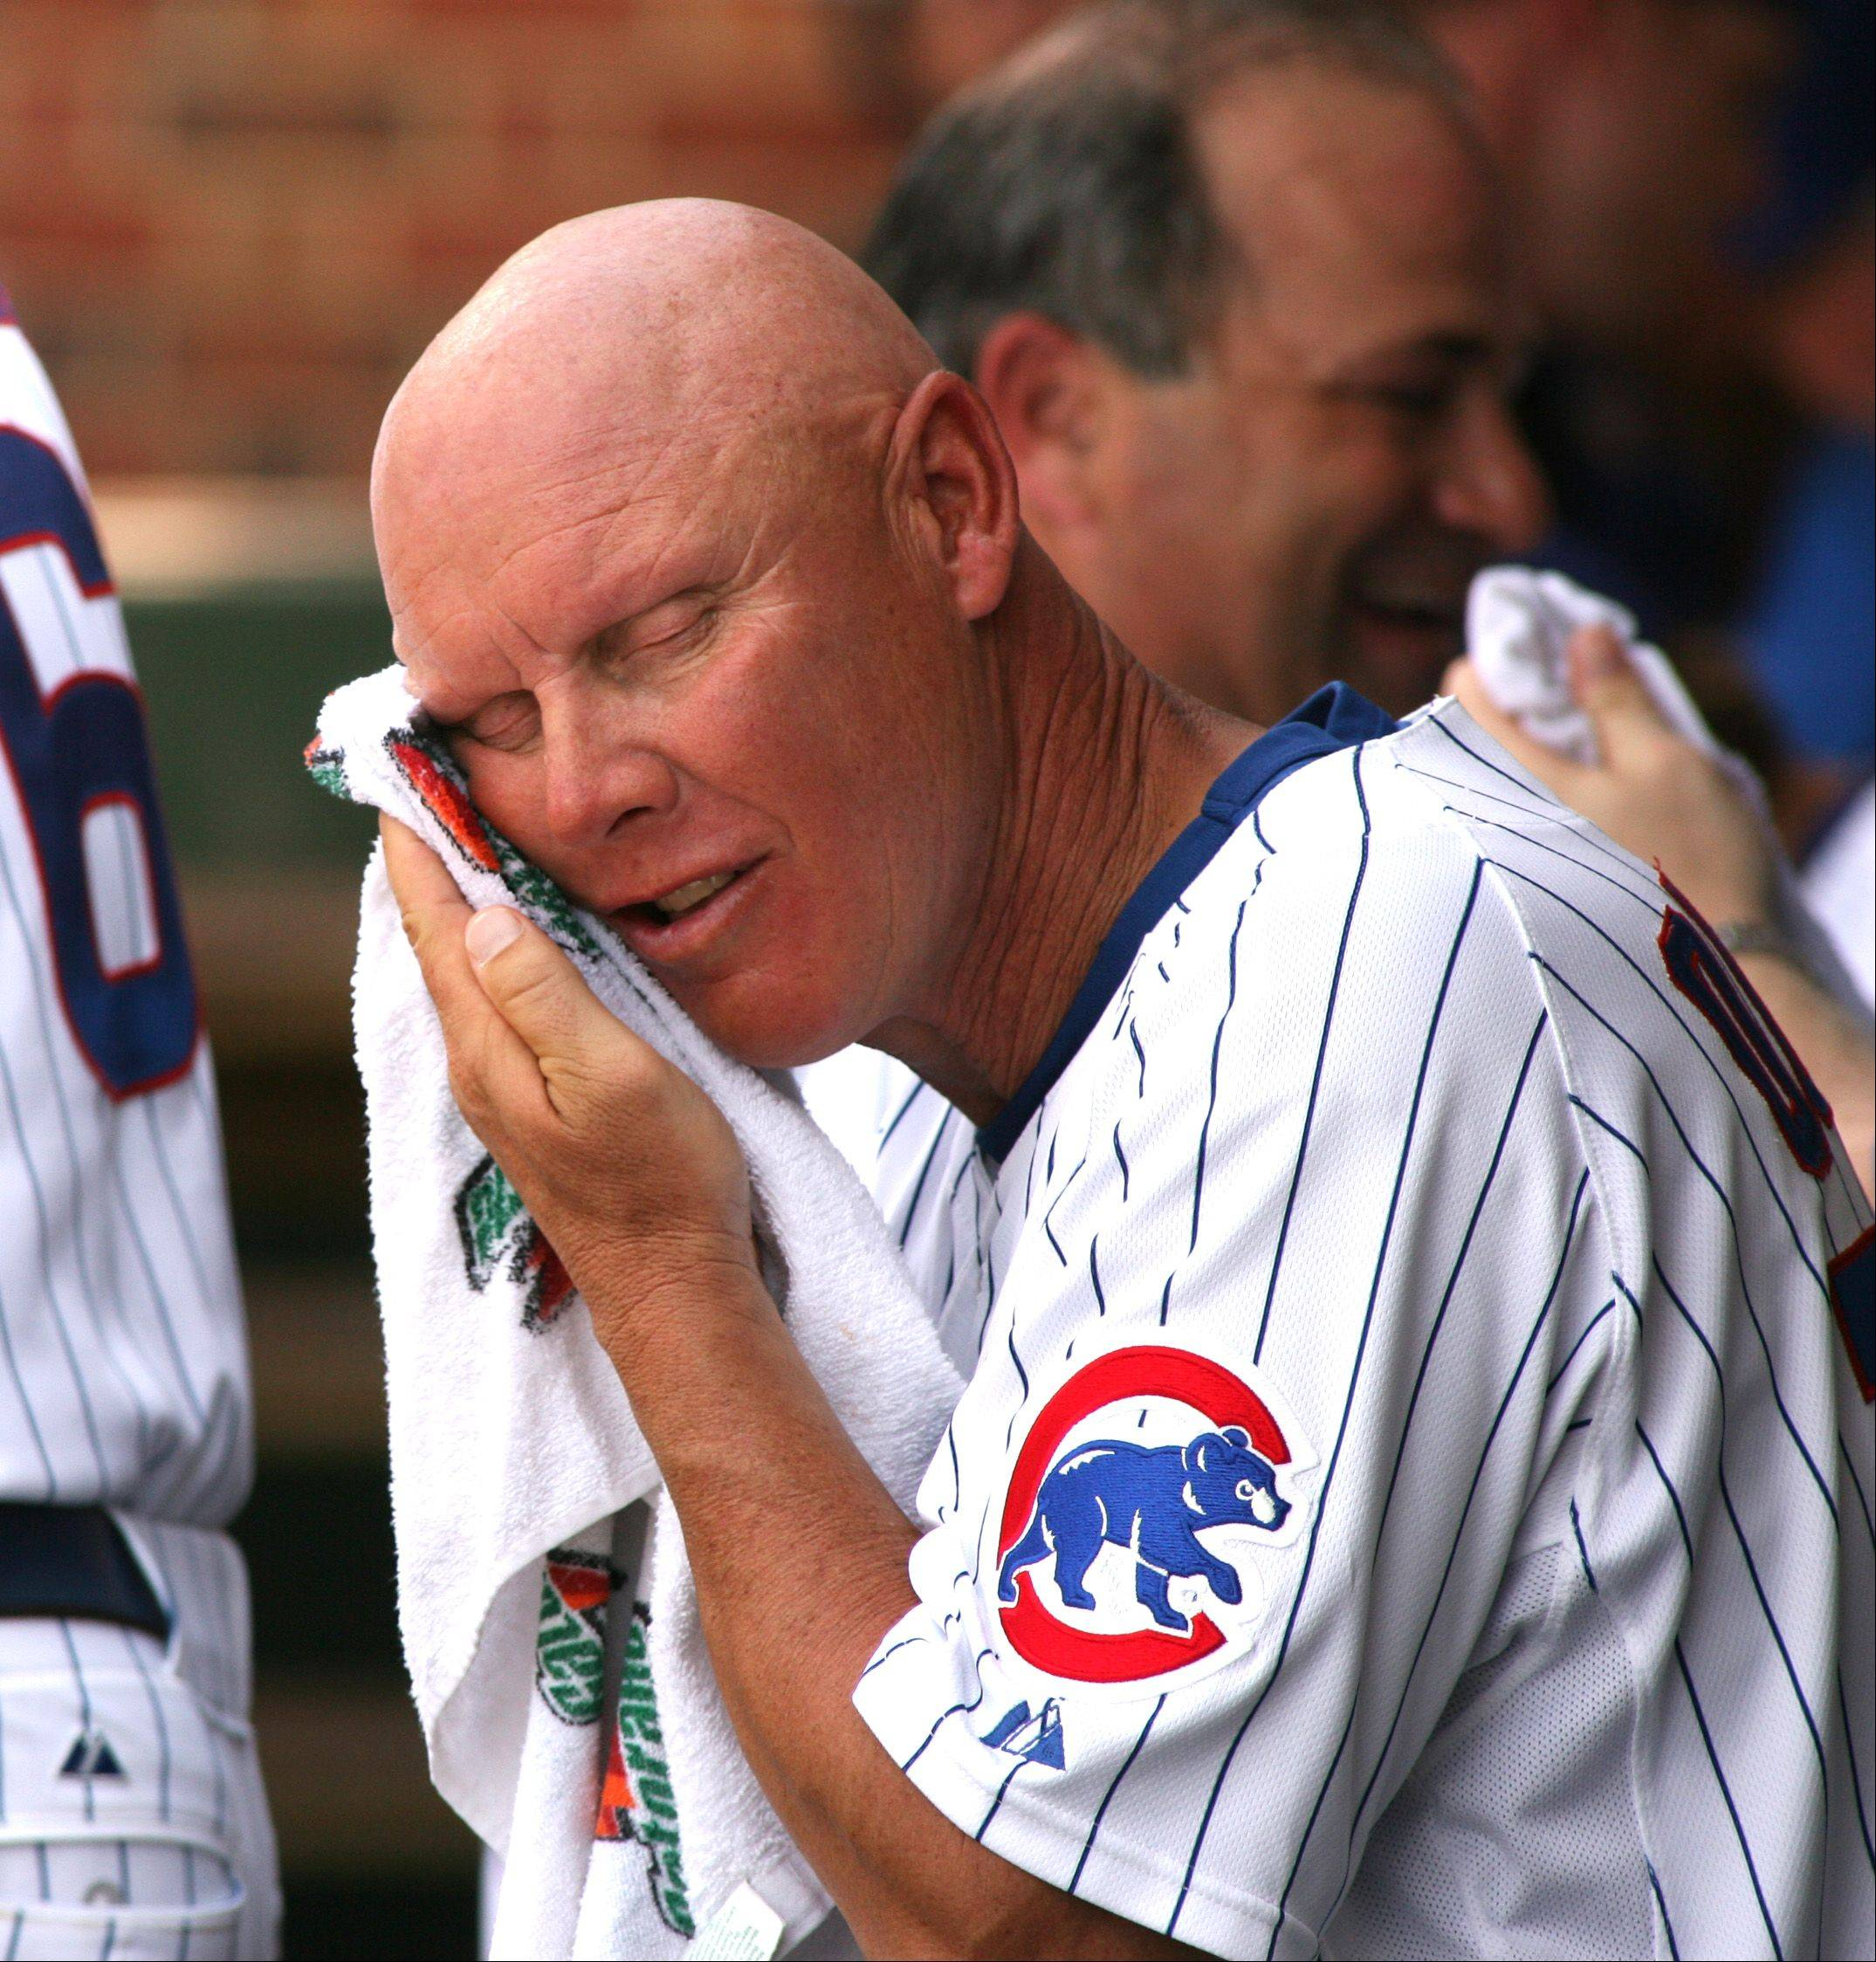 Chicago Cubs third base coach Mike Quade towels off some heat during a game against the Colorado Rockies.